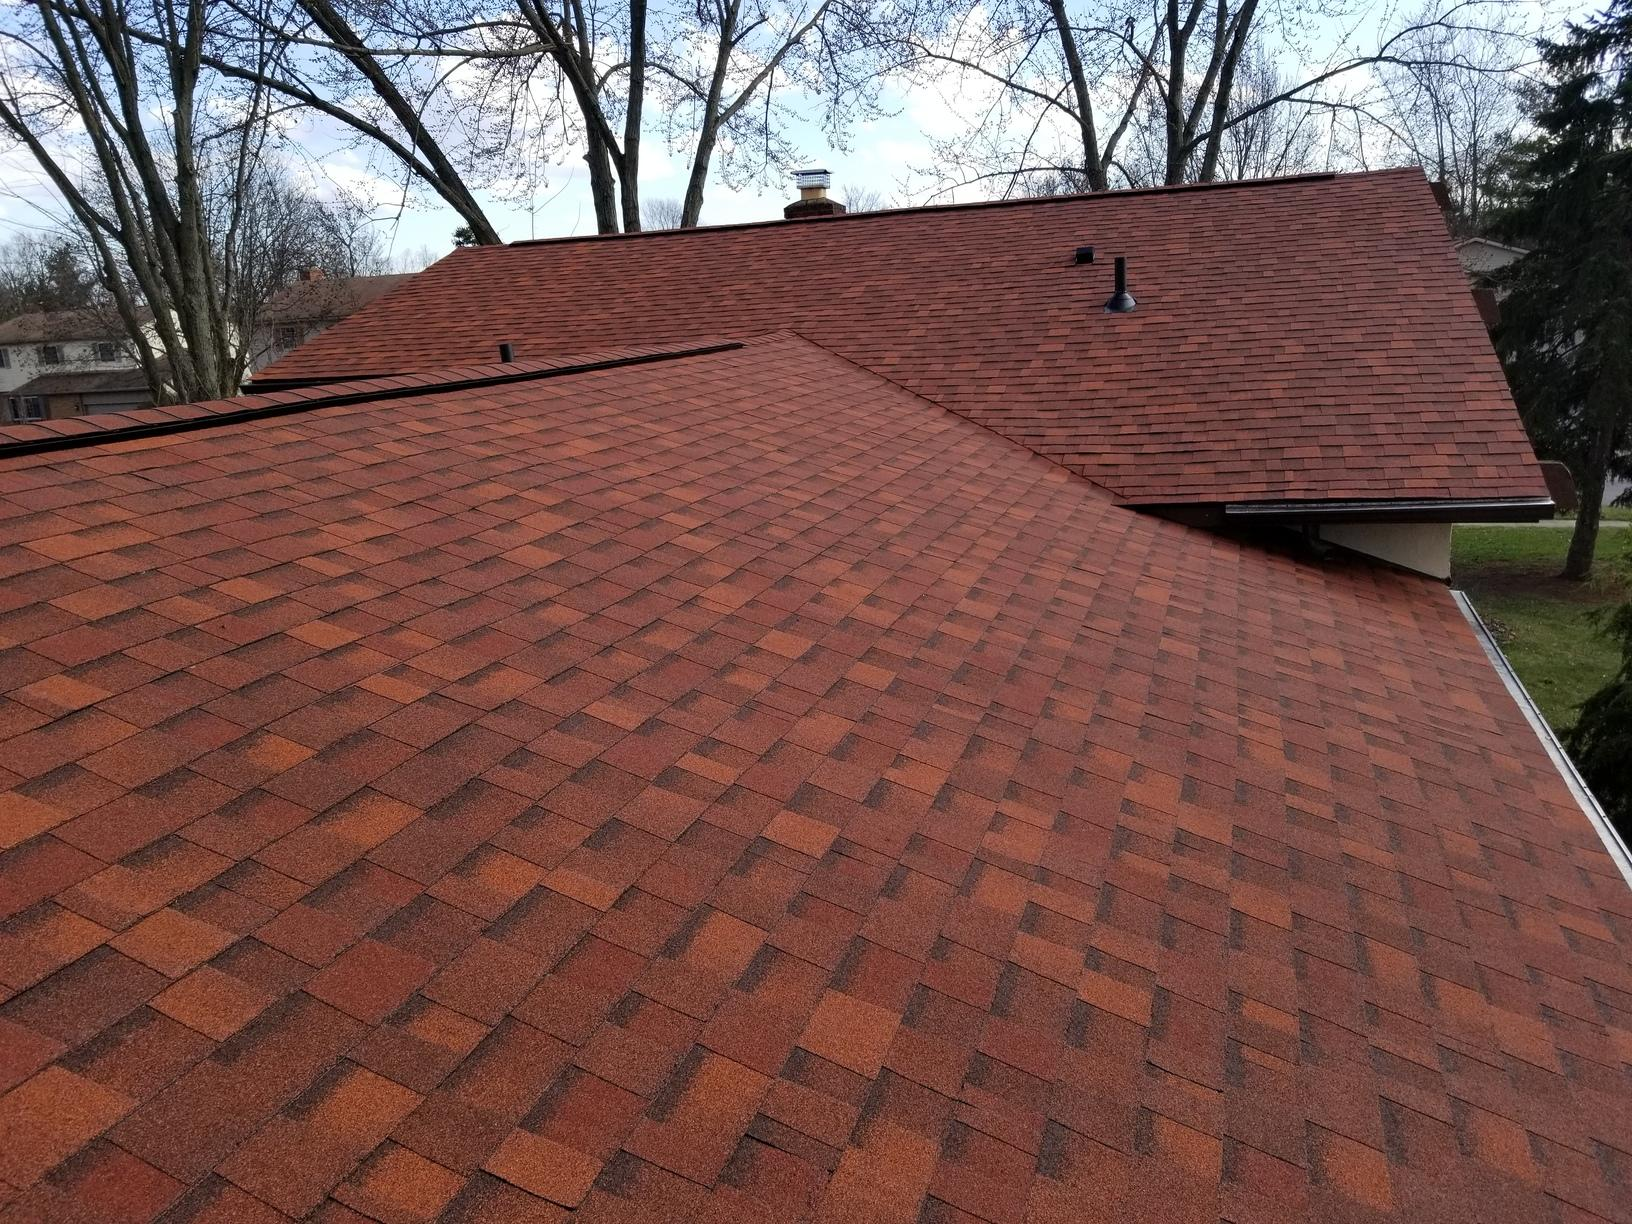 Terra Cotta Roof Replacement in Columbus, OH - After Photo